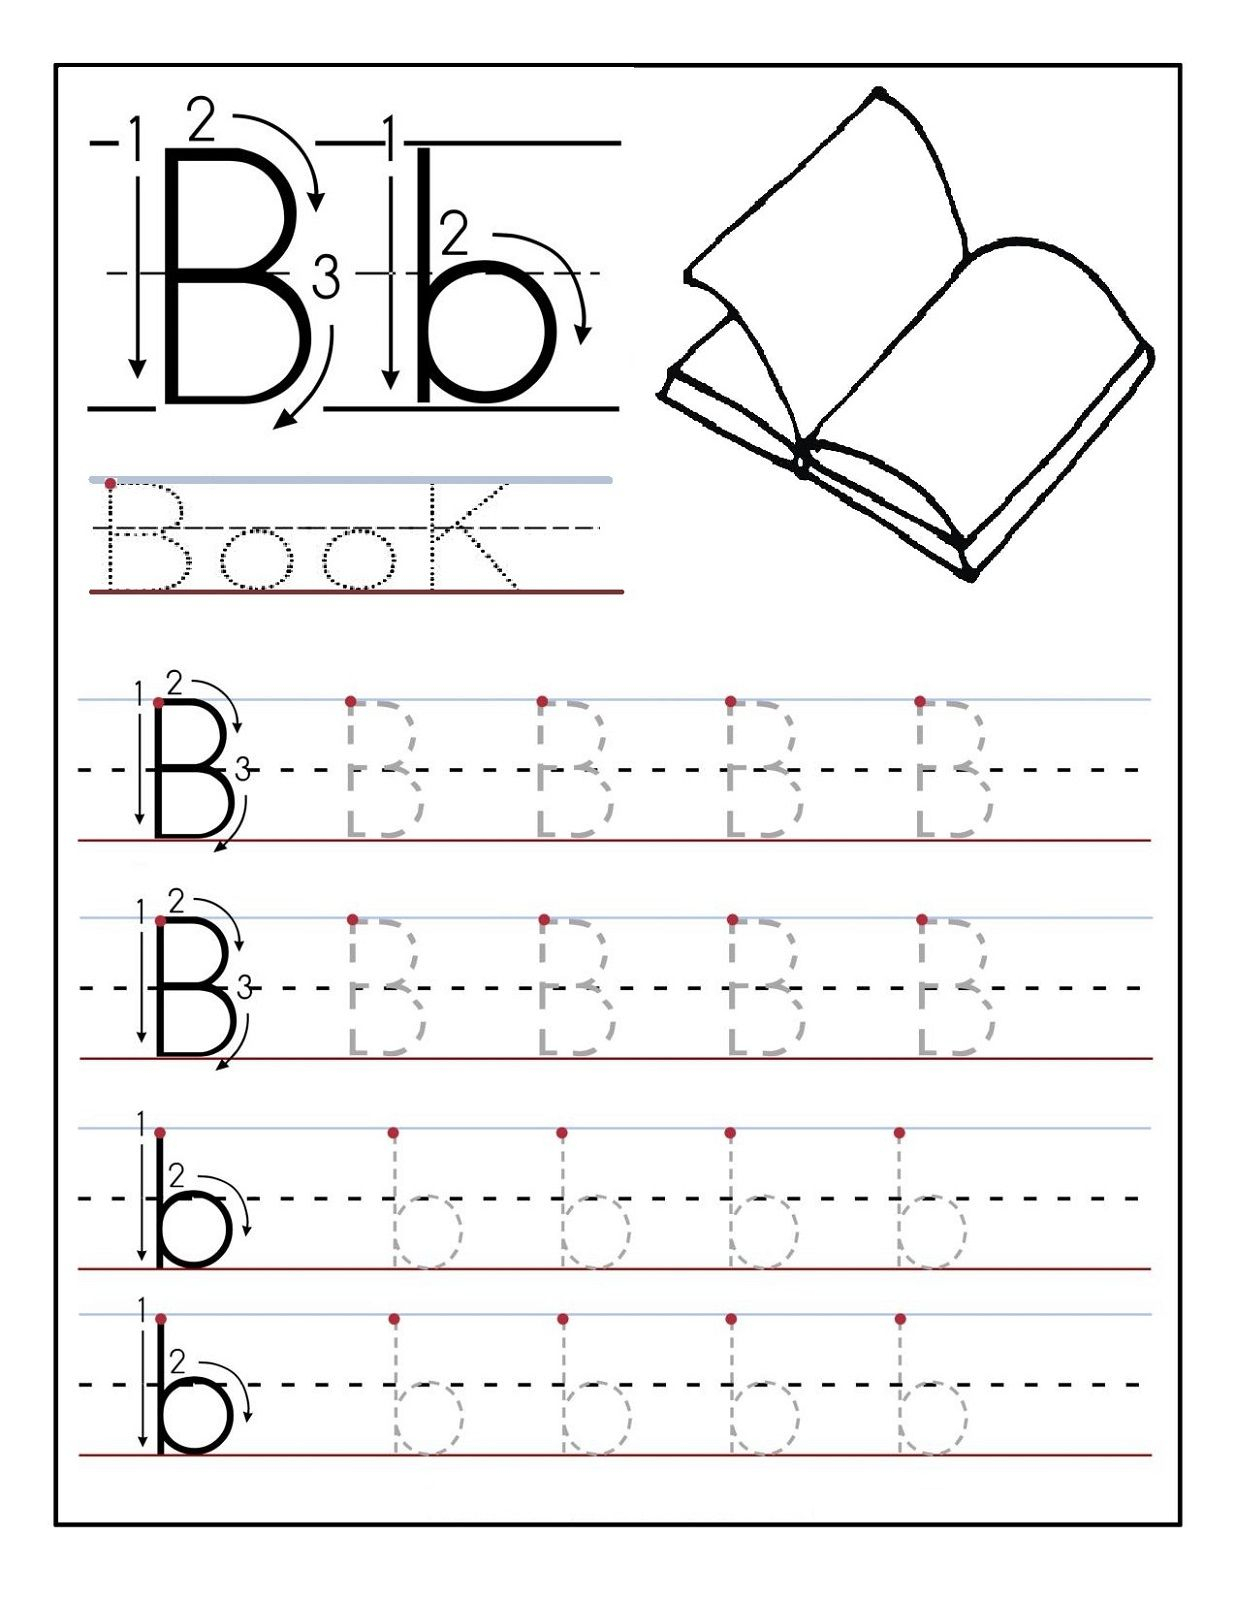 Gaganwathap (Gaganwathap) On Pinterest for Dotted Letters For Tracing Preschool